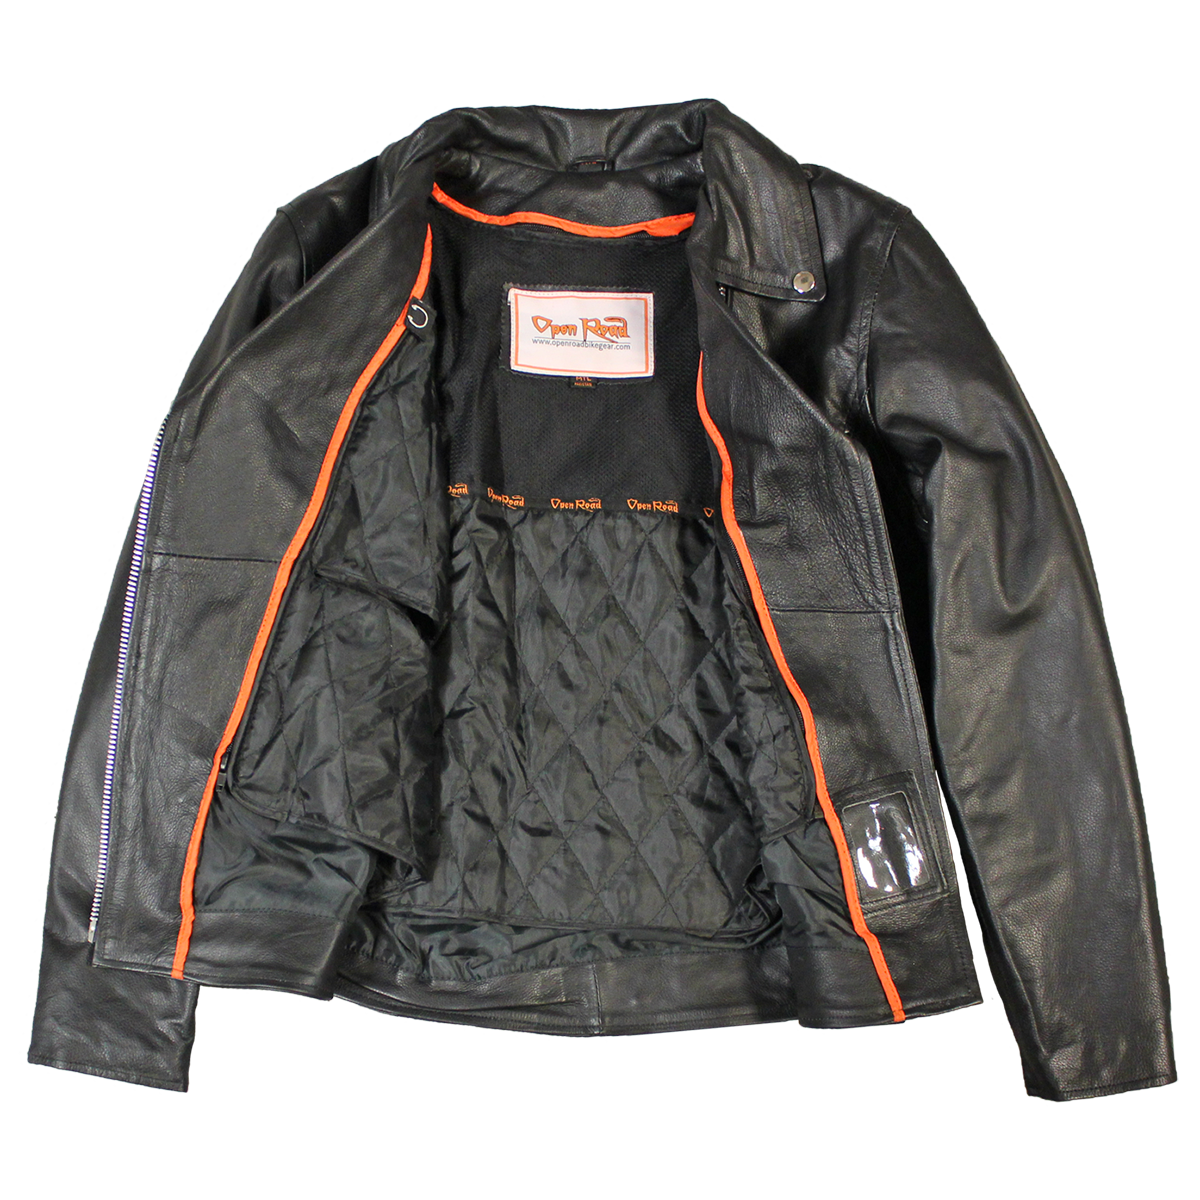 Women s Cycle Jackets - Boutique of Leathers Open Road 01968e4e4